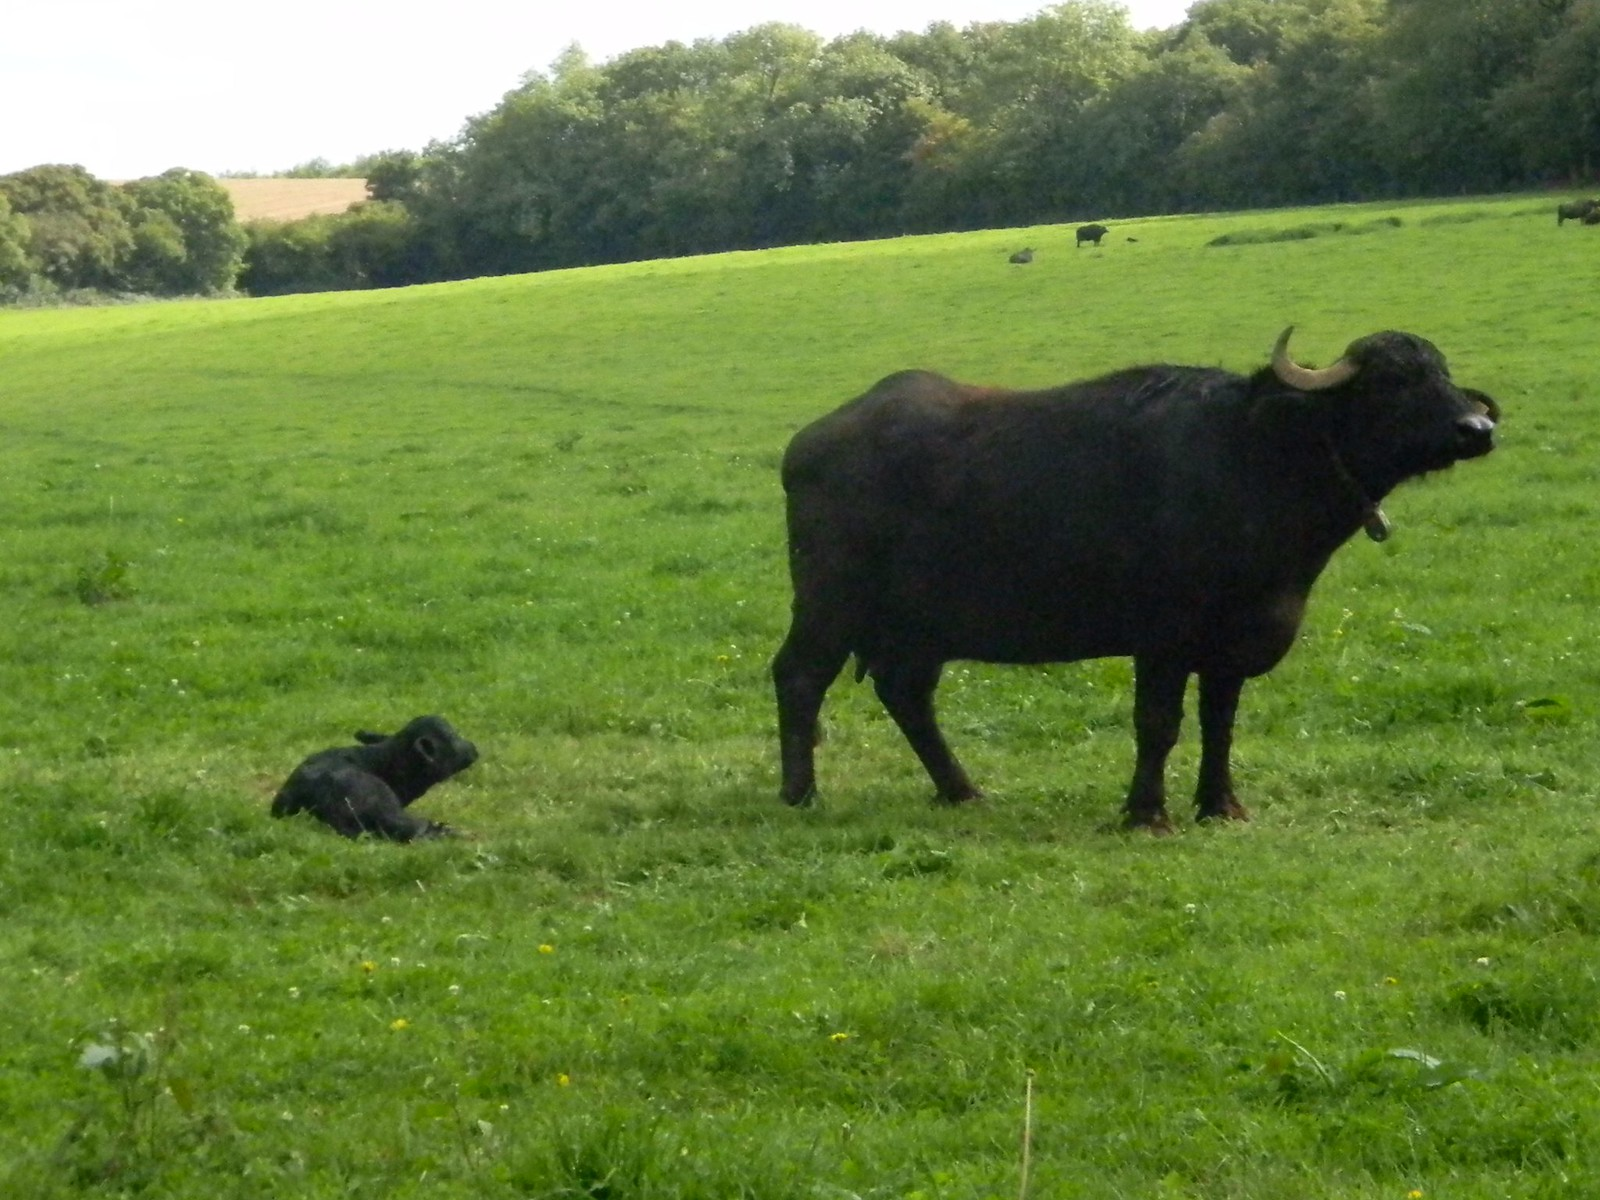 """Bufalo and calf Overton Circular. Its not everyday you find yourself walking past a water buffalo and even less likely one that has just given birth. I guess we were here www.laverstokepark.co.uk/buffalo-mozzarella"""" rel=""""nofollow www.laverstokepark.co.uk/buffalo-mozzarella"""